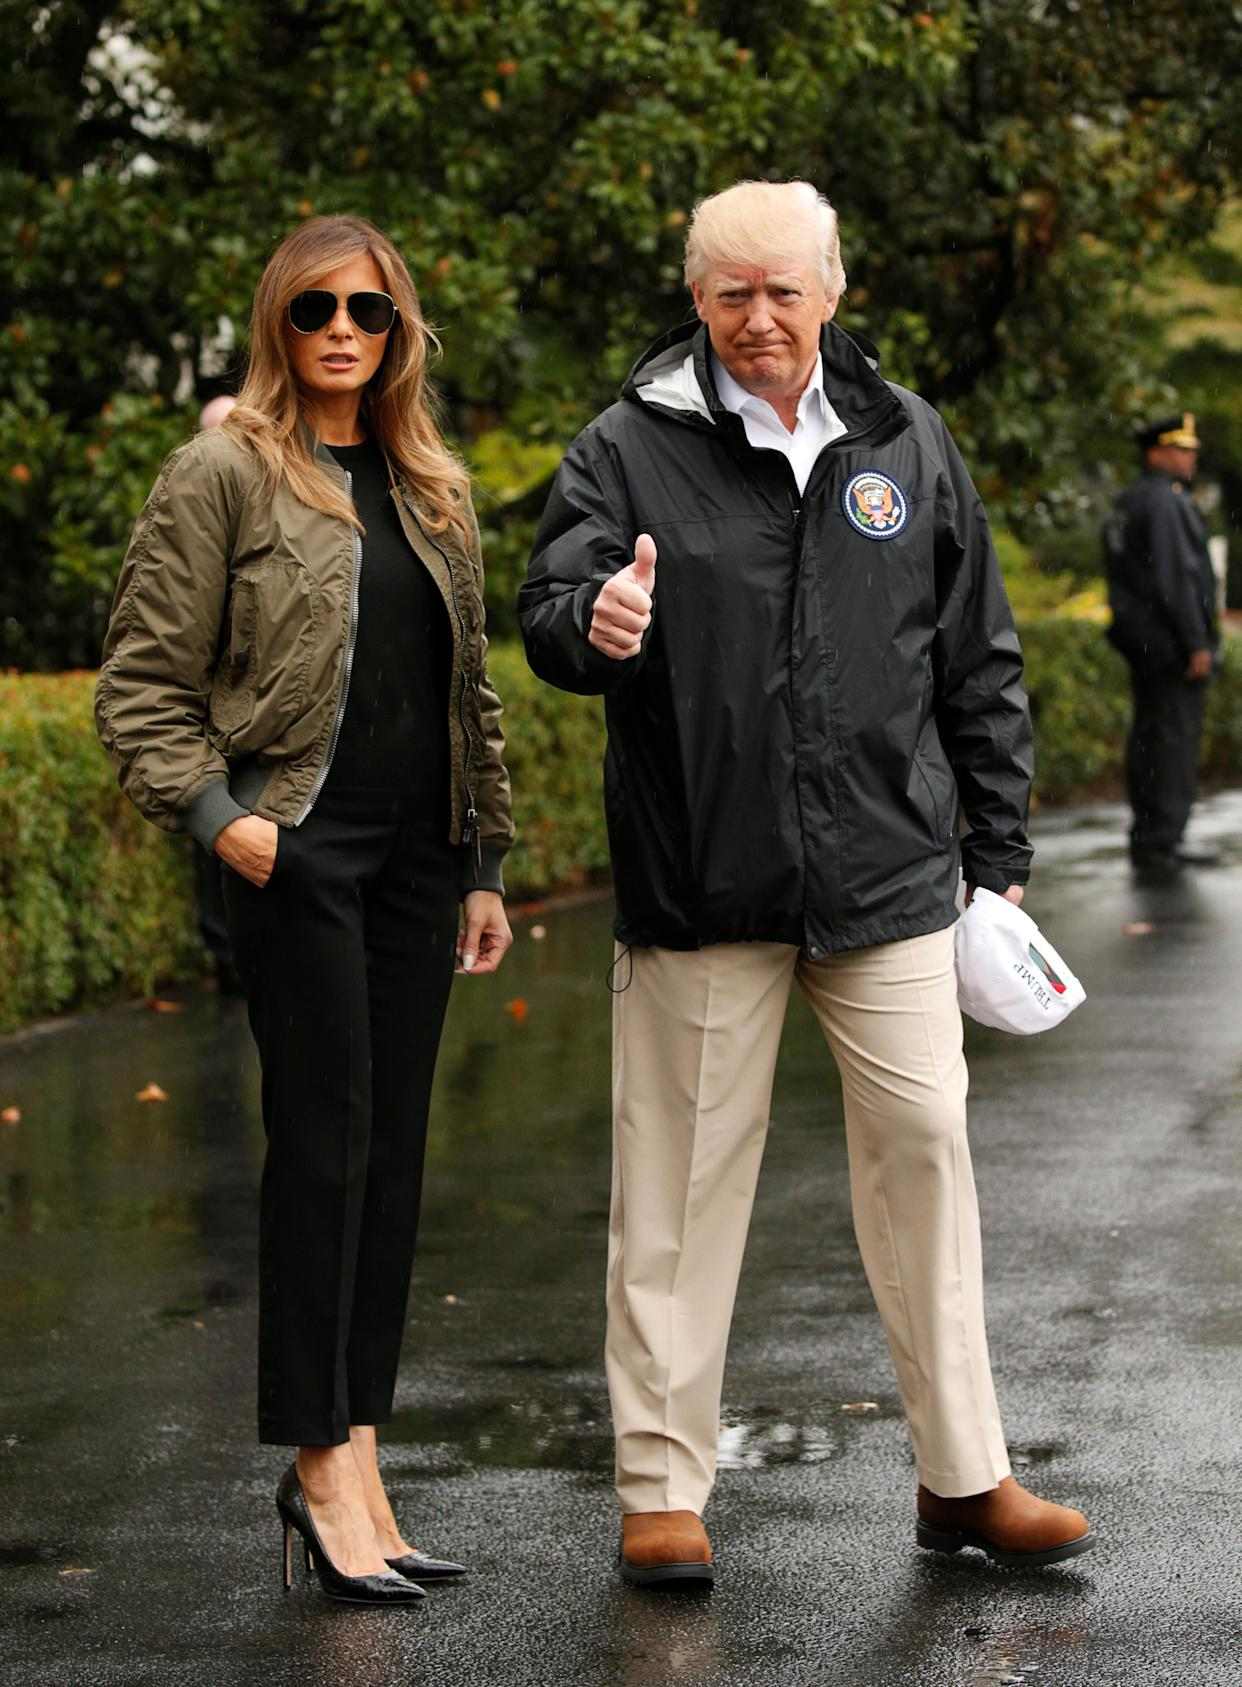 People balked at seeing the first lady in heels for a trip to visit areas affected by Hurricane Harvey, but she changed before touching down in Texas. (Photo: Kevin Lamarque / Reuters)